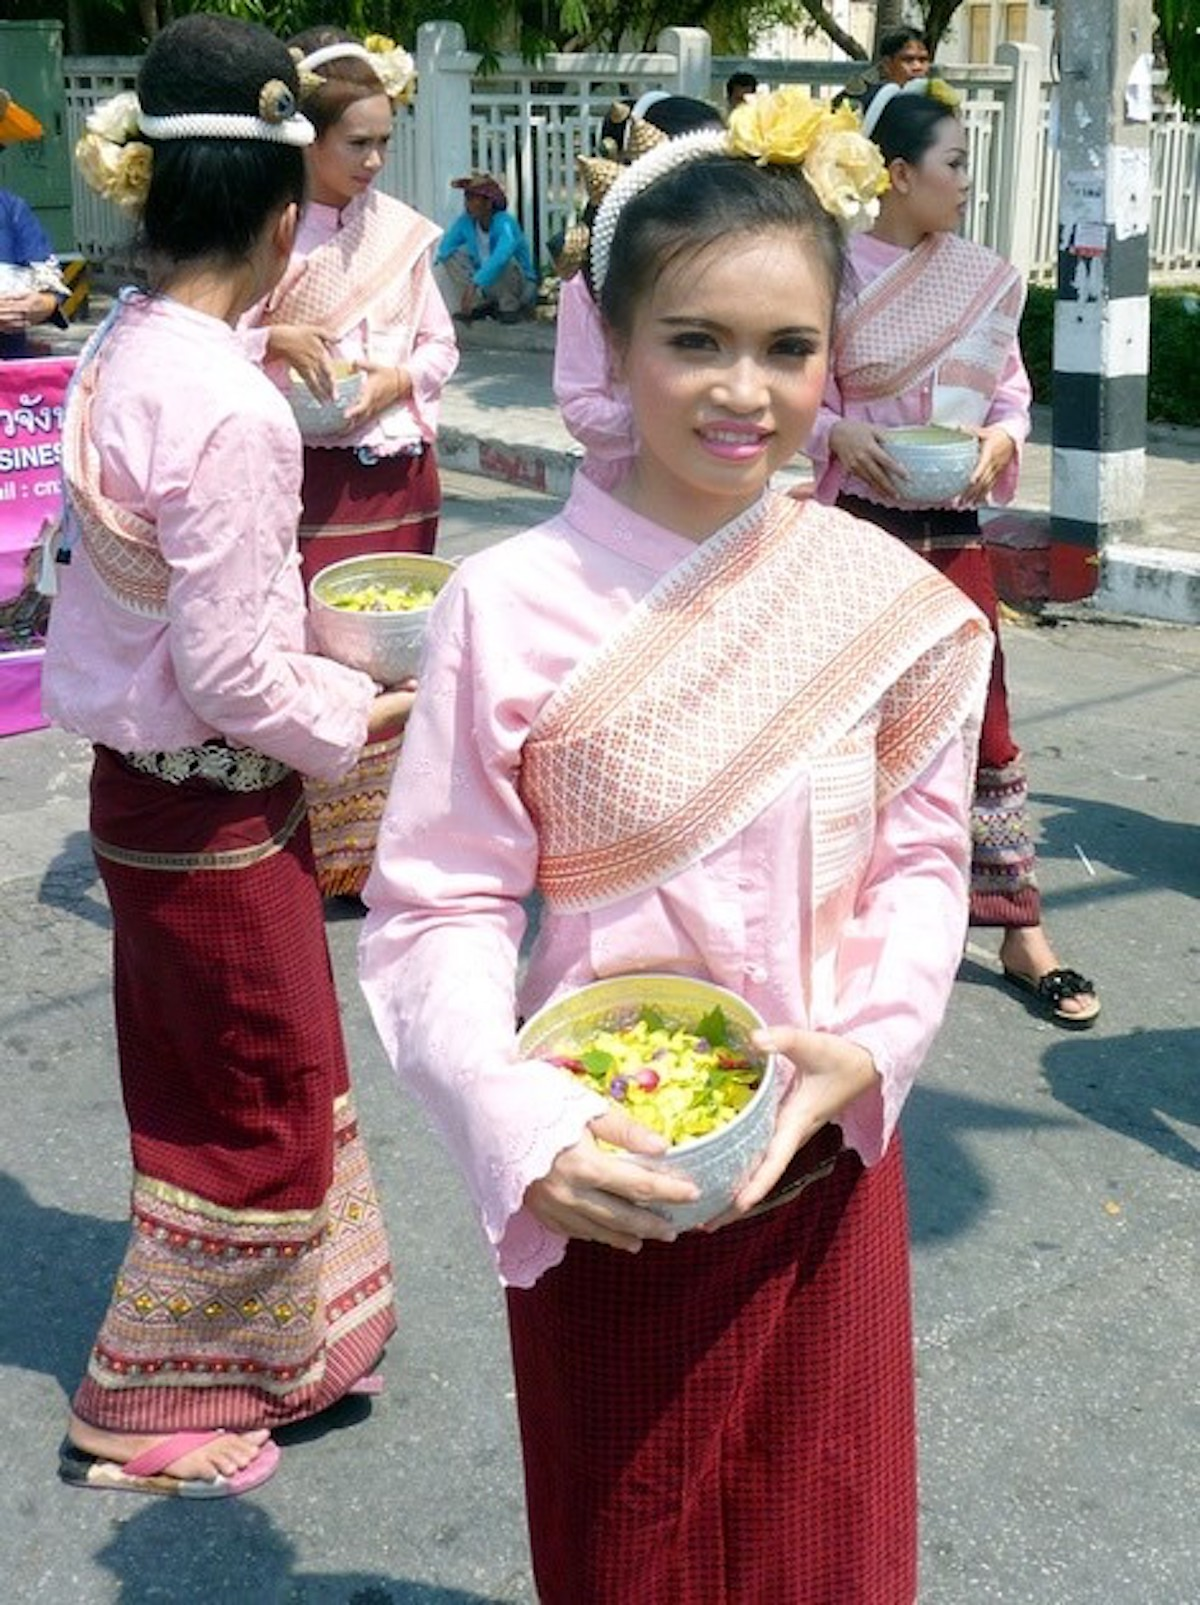 A pretty Thai lady in traditional dress smiles at the camera